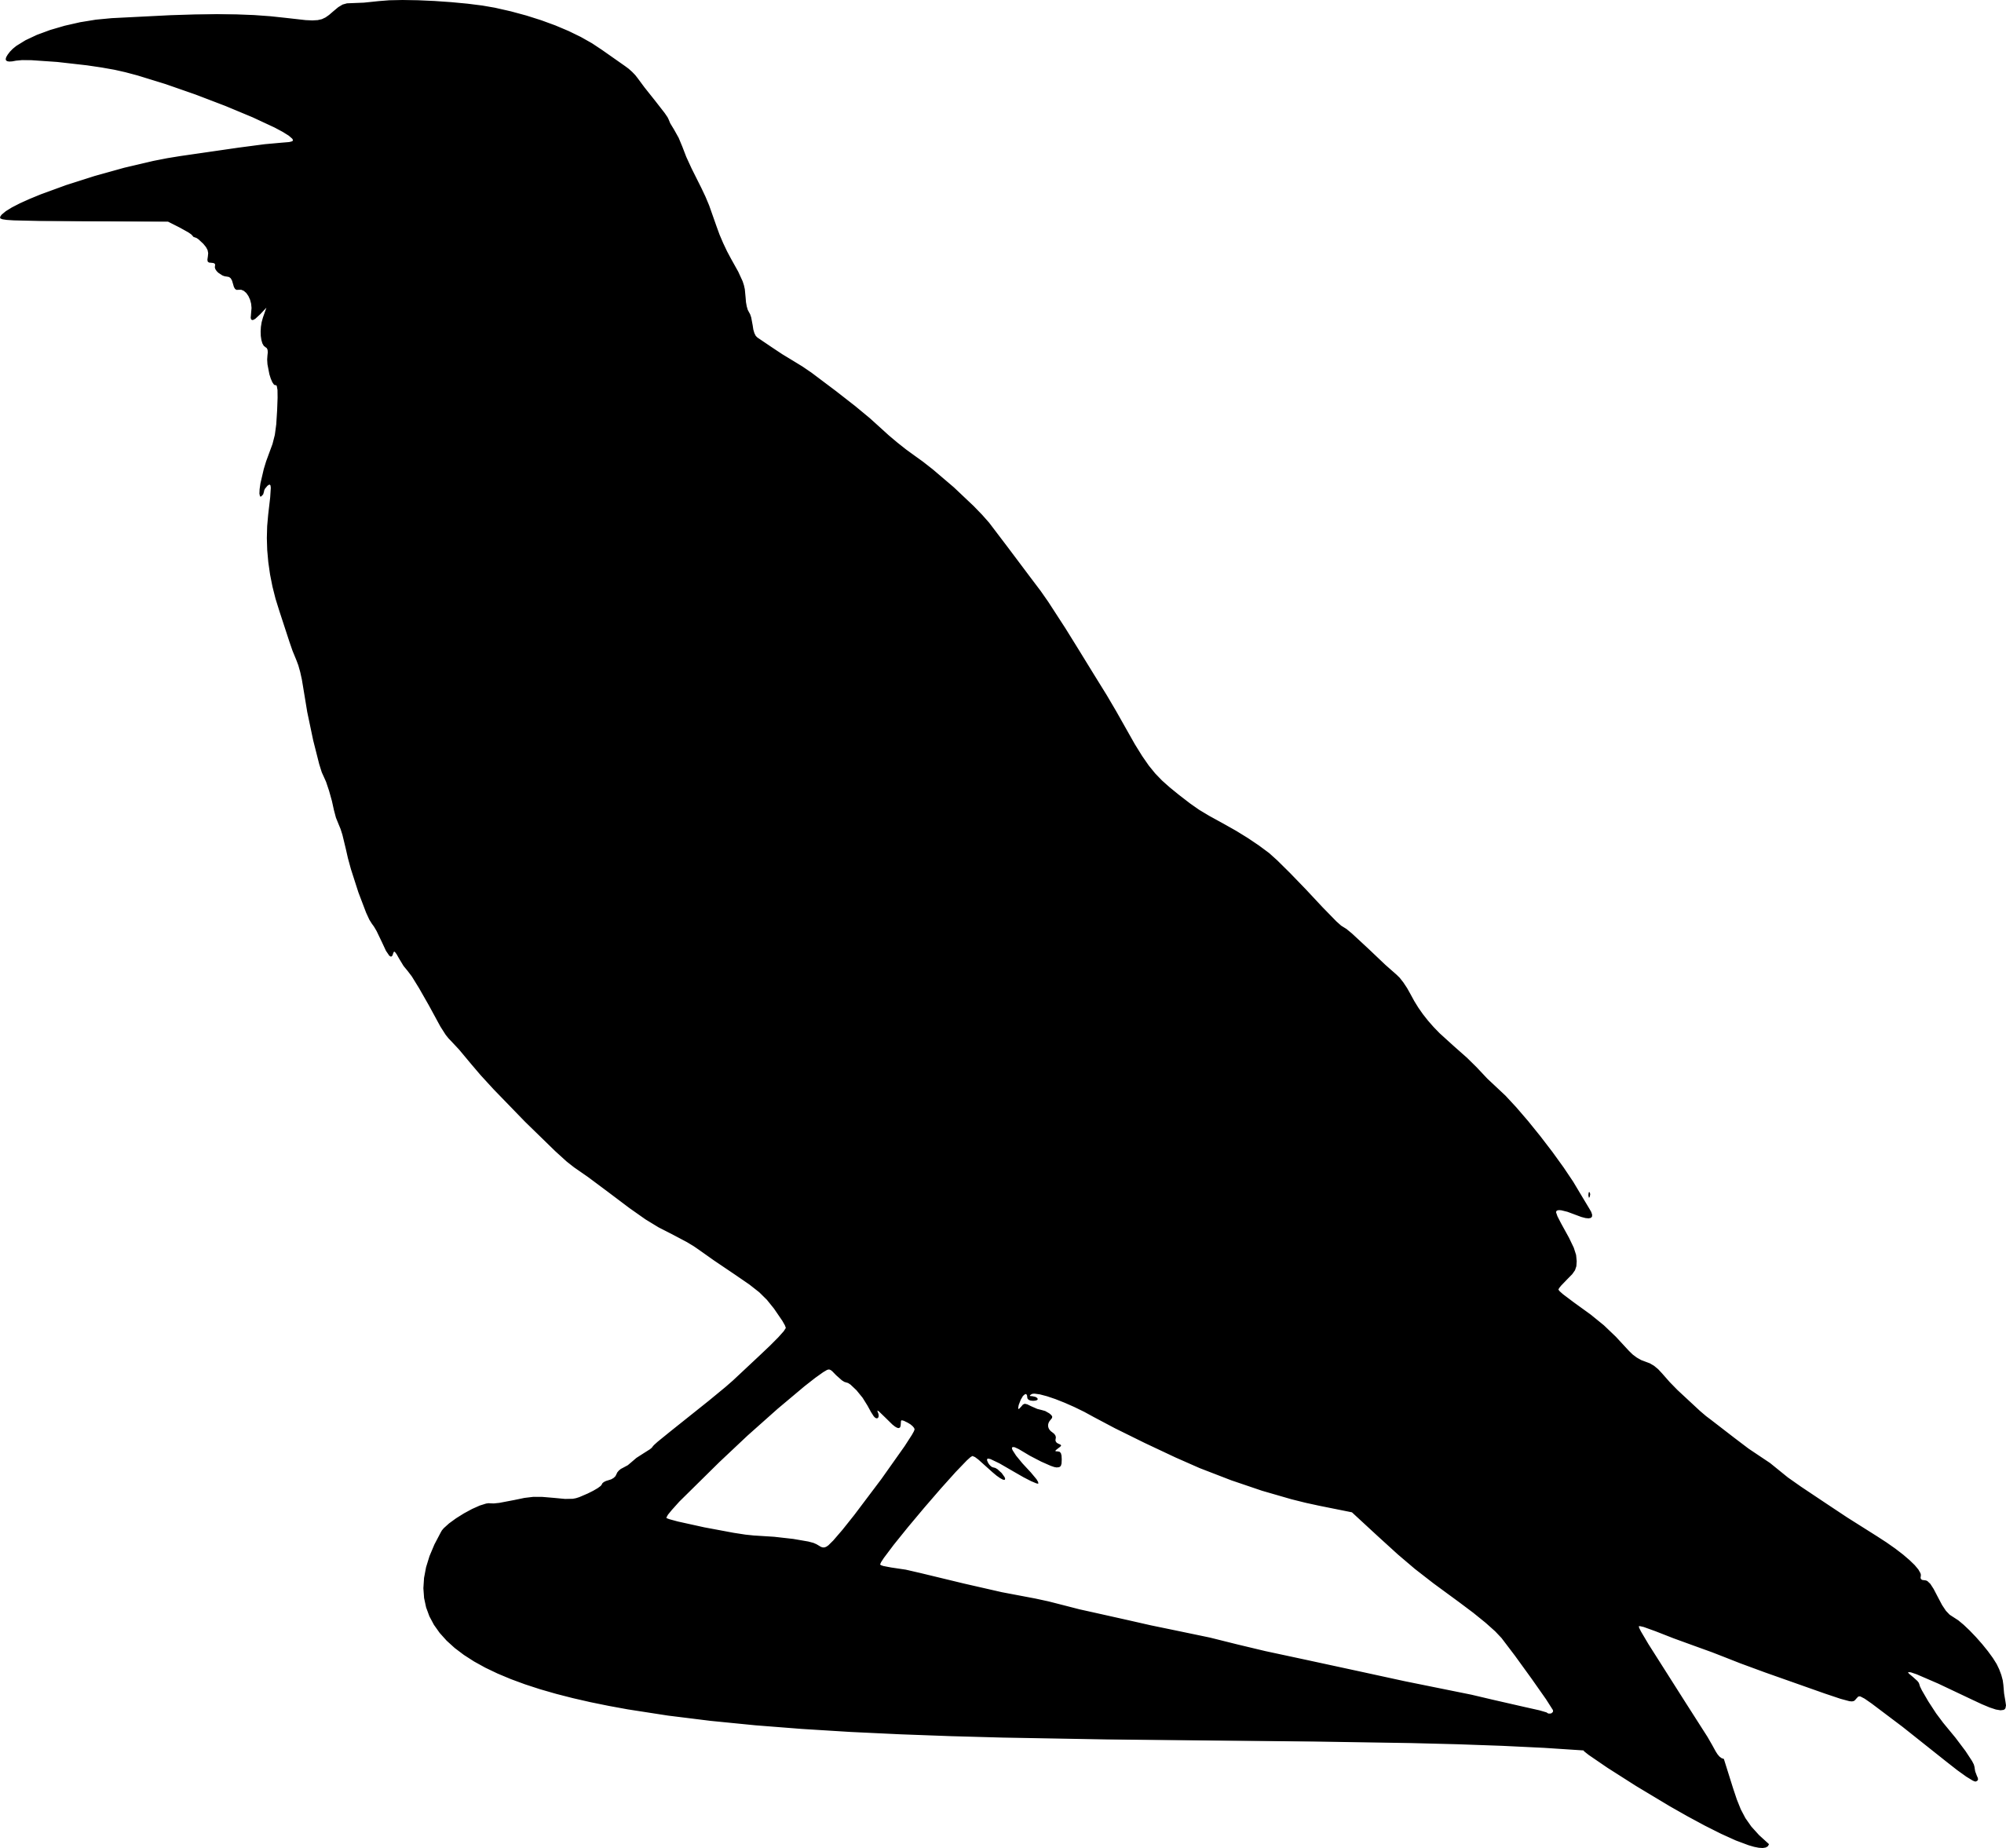 American Crow clipart #17, Download drawings